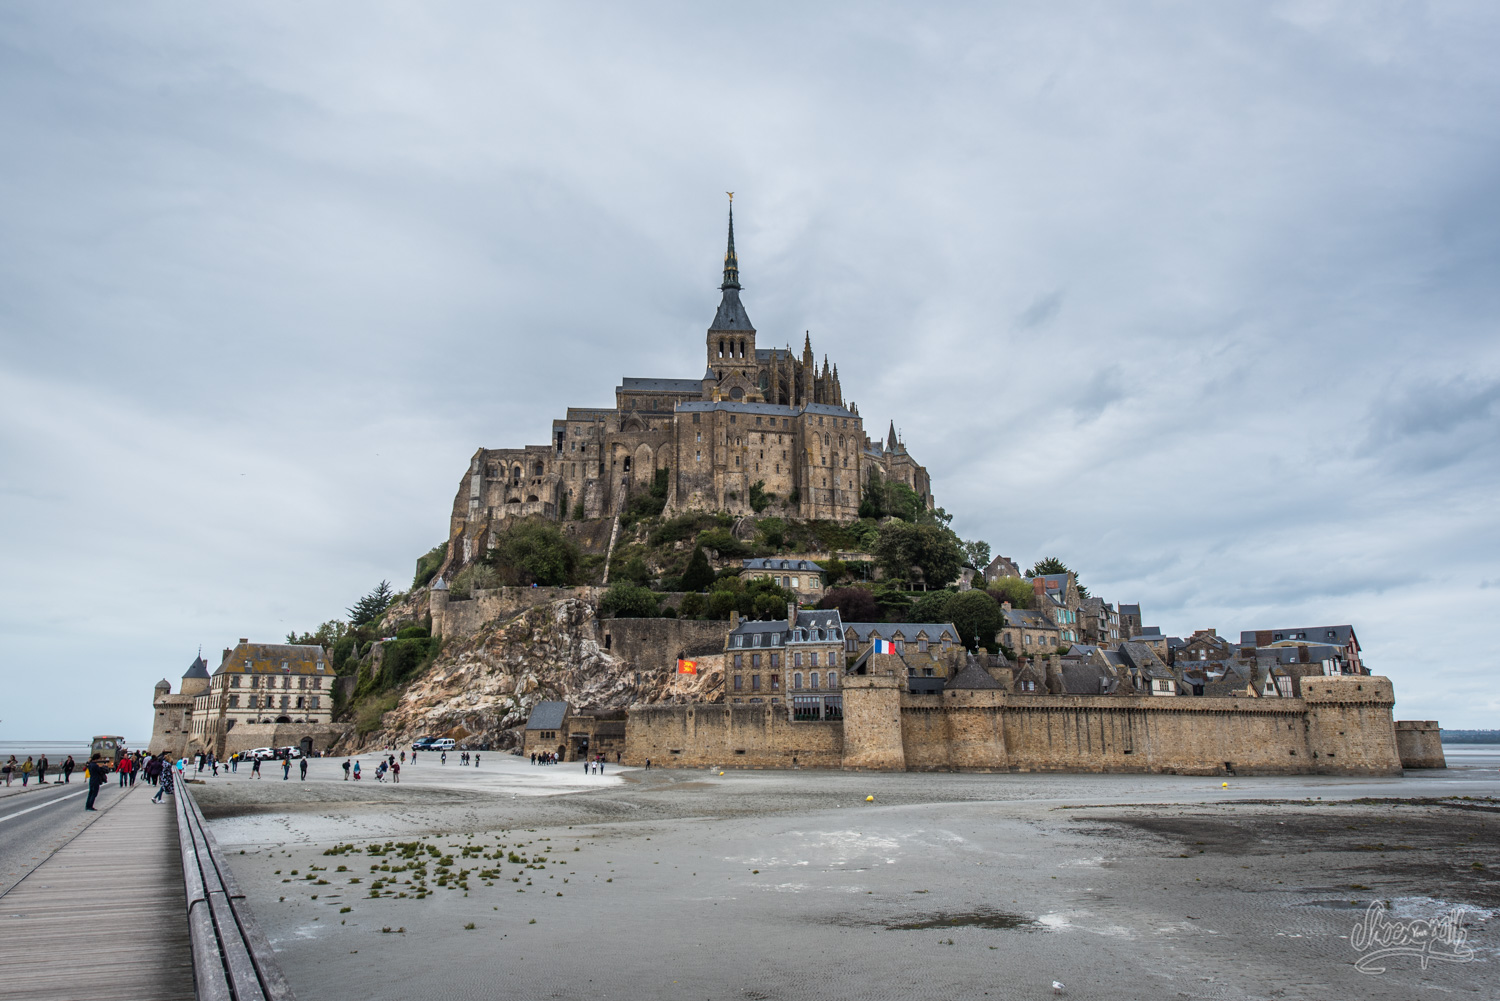 France – Véloscénie: Biking Through Normandy To The Mont Saint-Michel